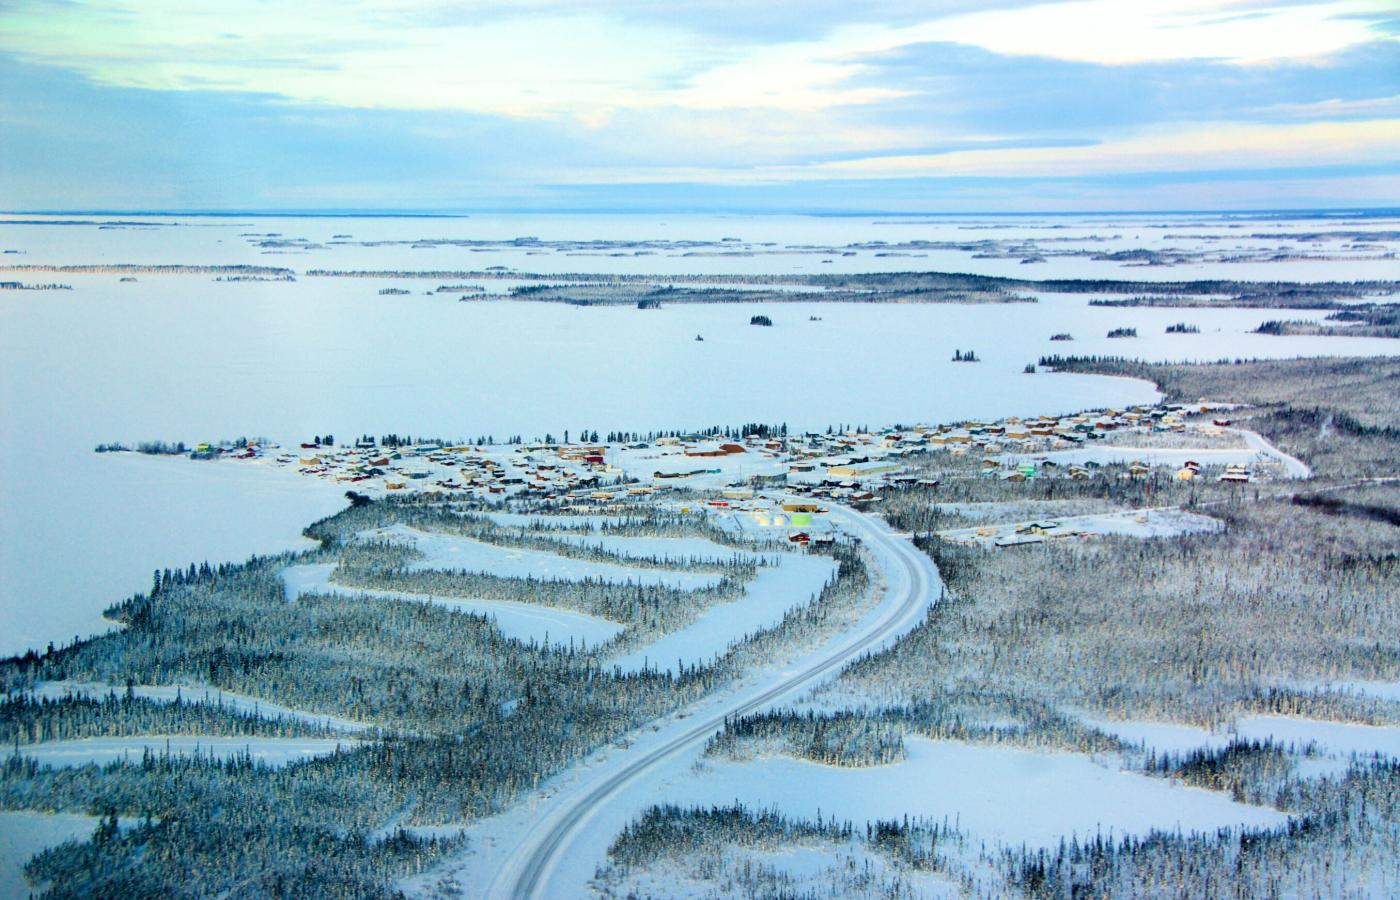 The Behchokǫ̀-Gameti Winter Road in the NWT